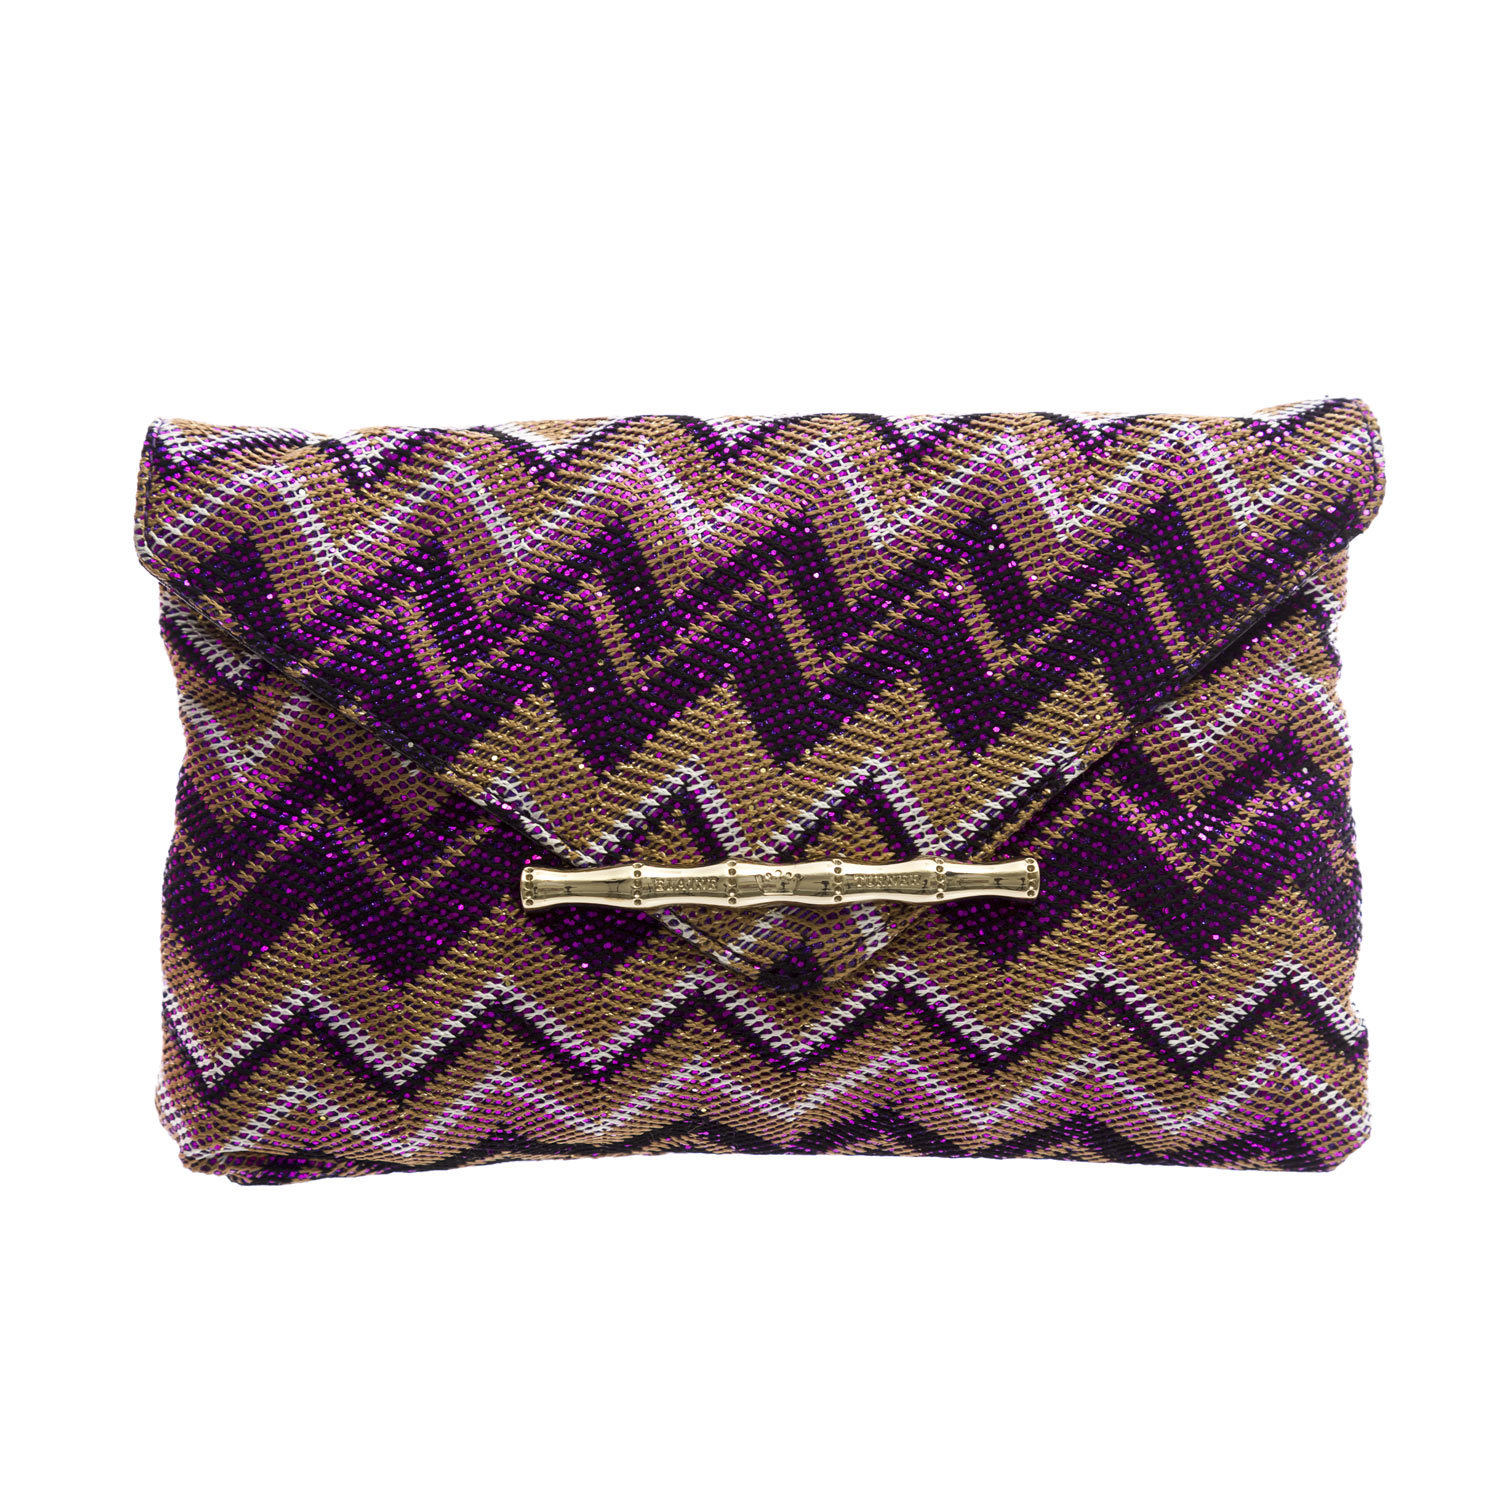 Elaine Turner Women's Zip Zag Bella Envelope Clutch Bag One Size Purple